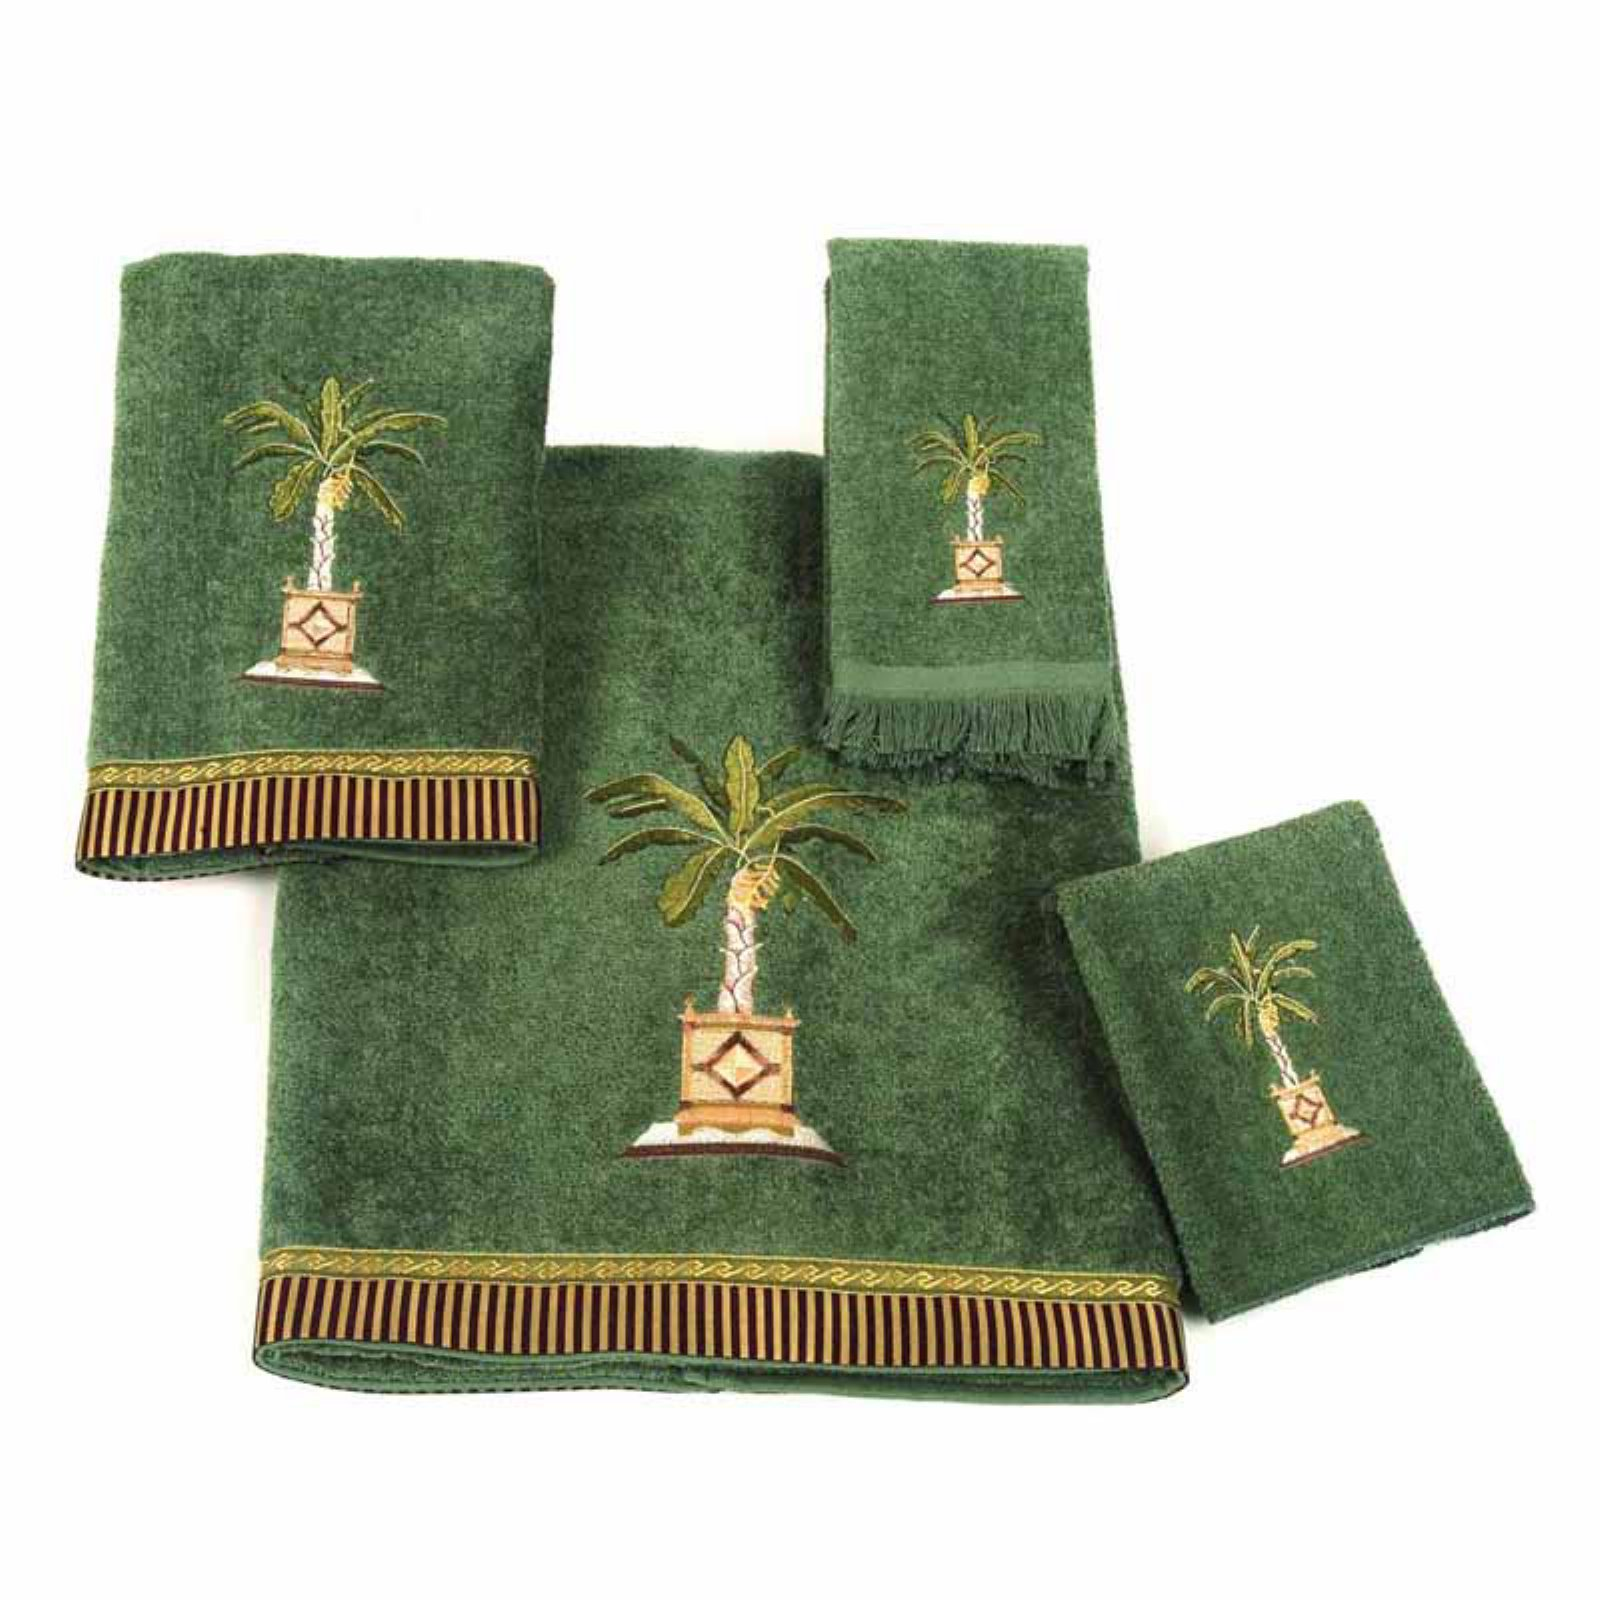 Avanti Linens Banana Palm 4-Piece Towel Set